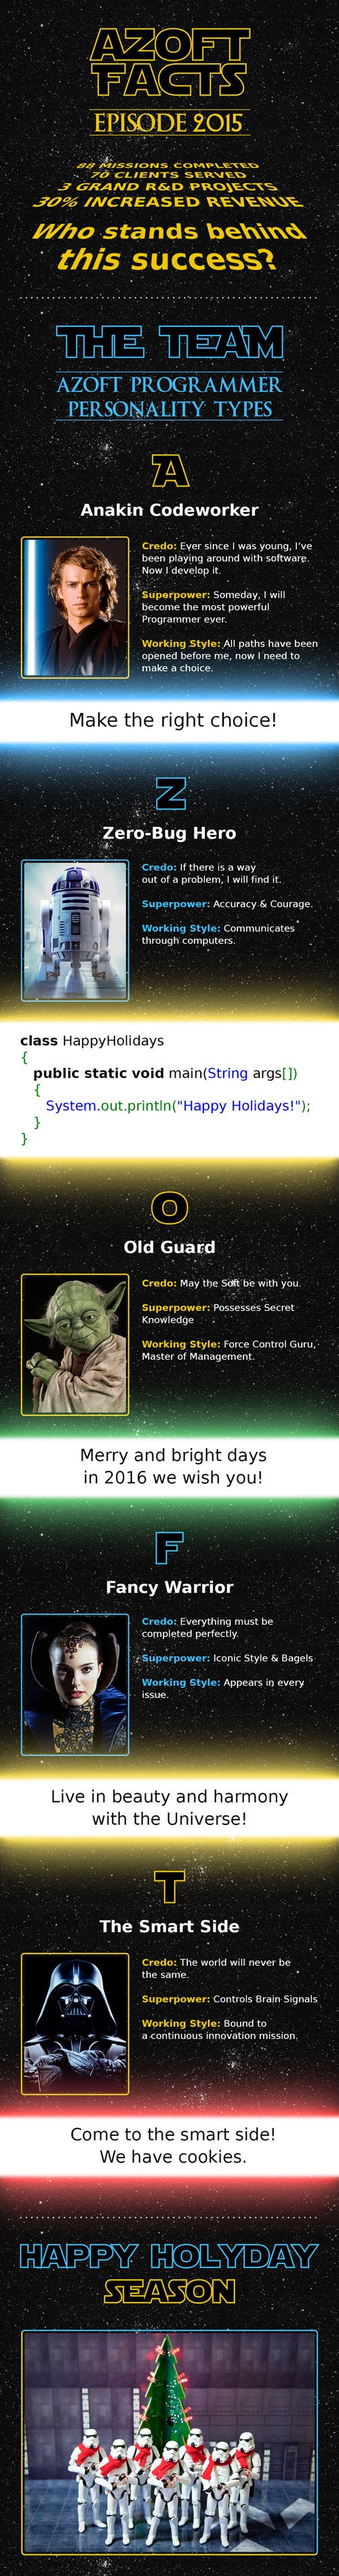 Holiday Greetings Infographic